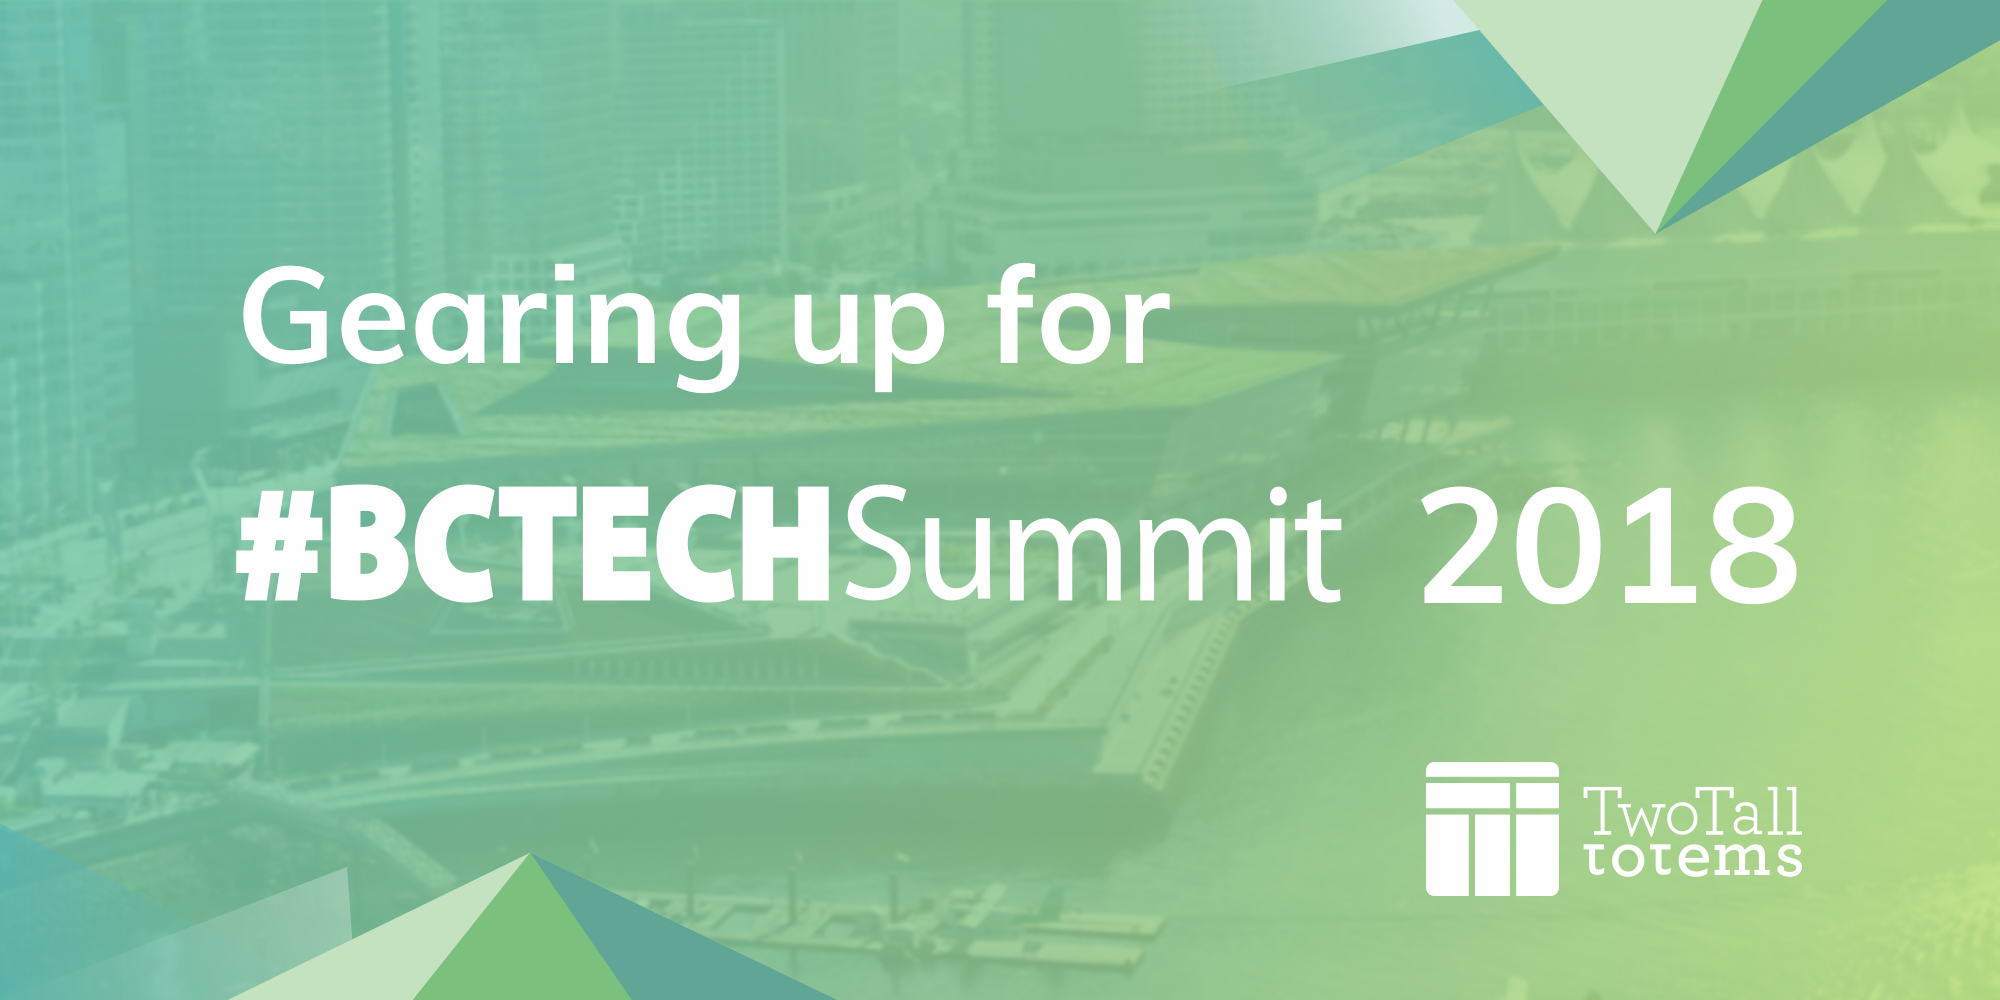 Gearing up for #BCTECH Summit 2018